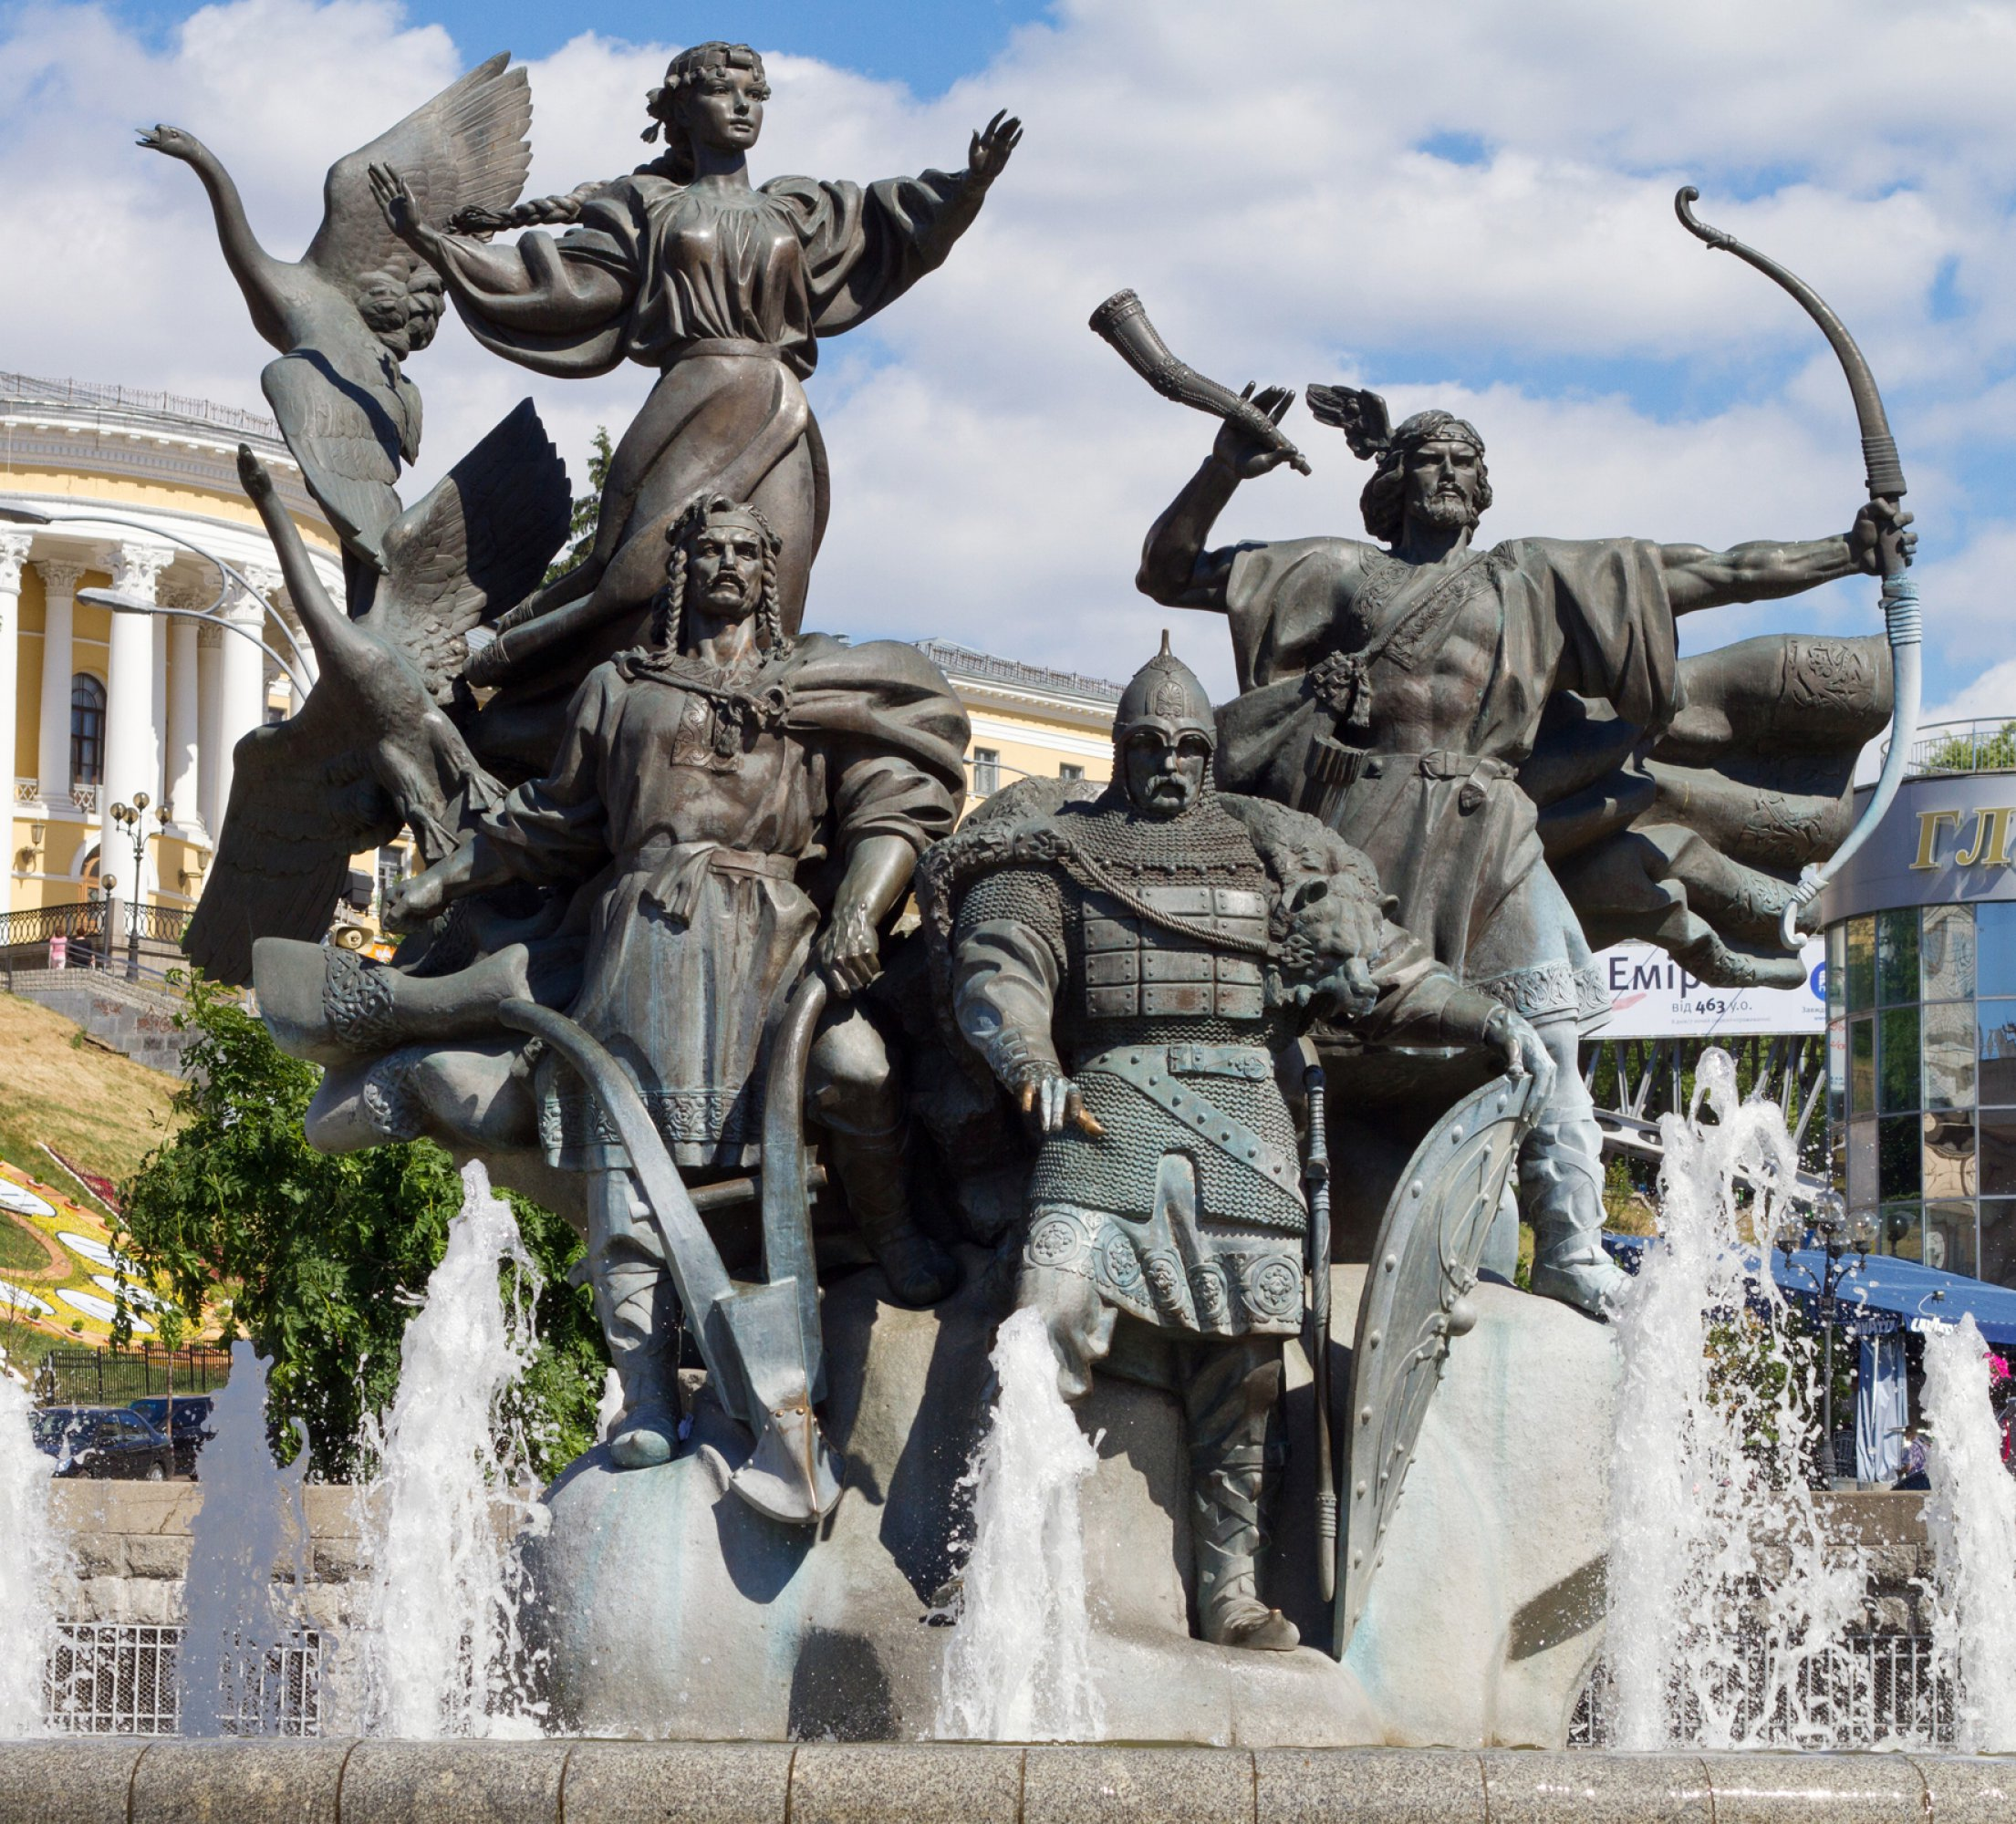 https://bubo.sk/uploads/galleries/5056/ukrajina-monument-of-city-founders-at-independence-square-in-kiev.jpg